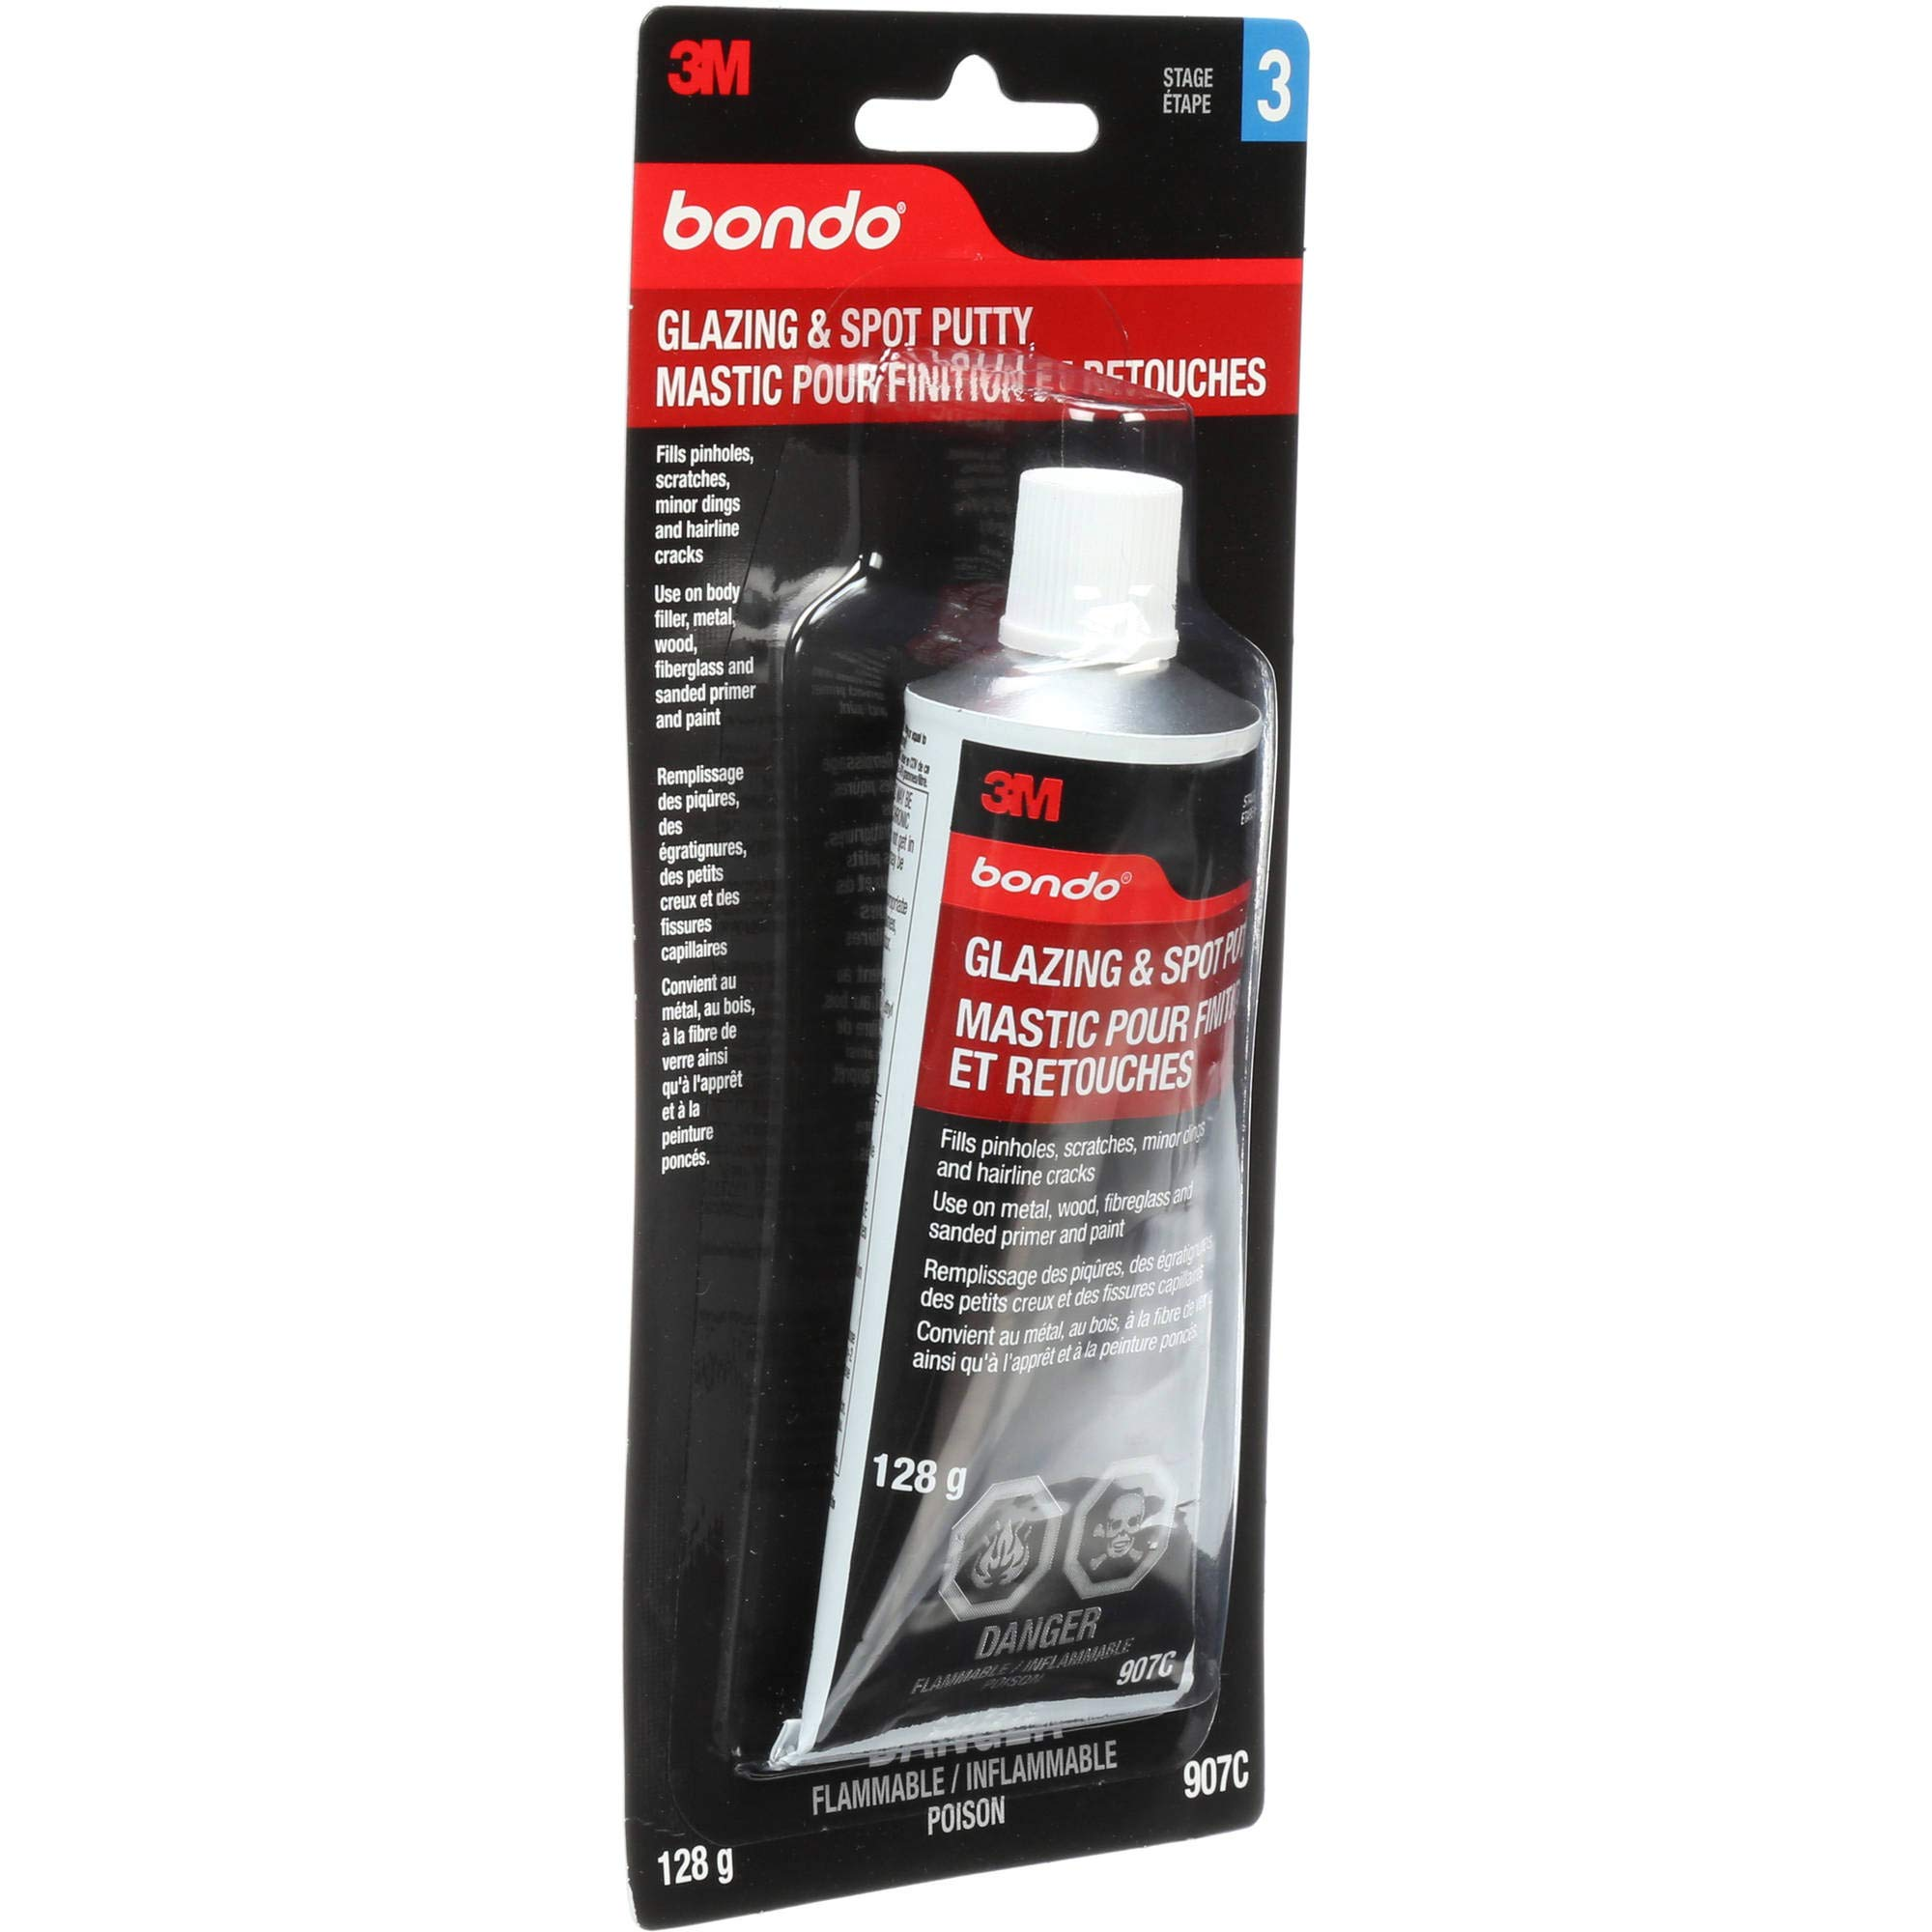 Bondo 046-045 1Lb 651 Glazing & Spot Putty Tube (Red) - 12ct. Case by Bondo (Image #1)